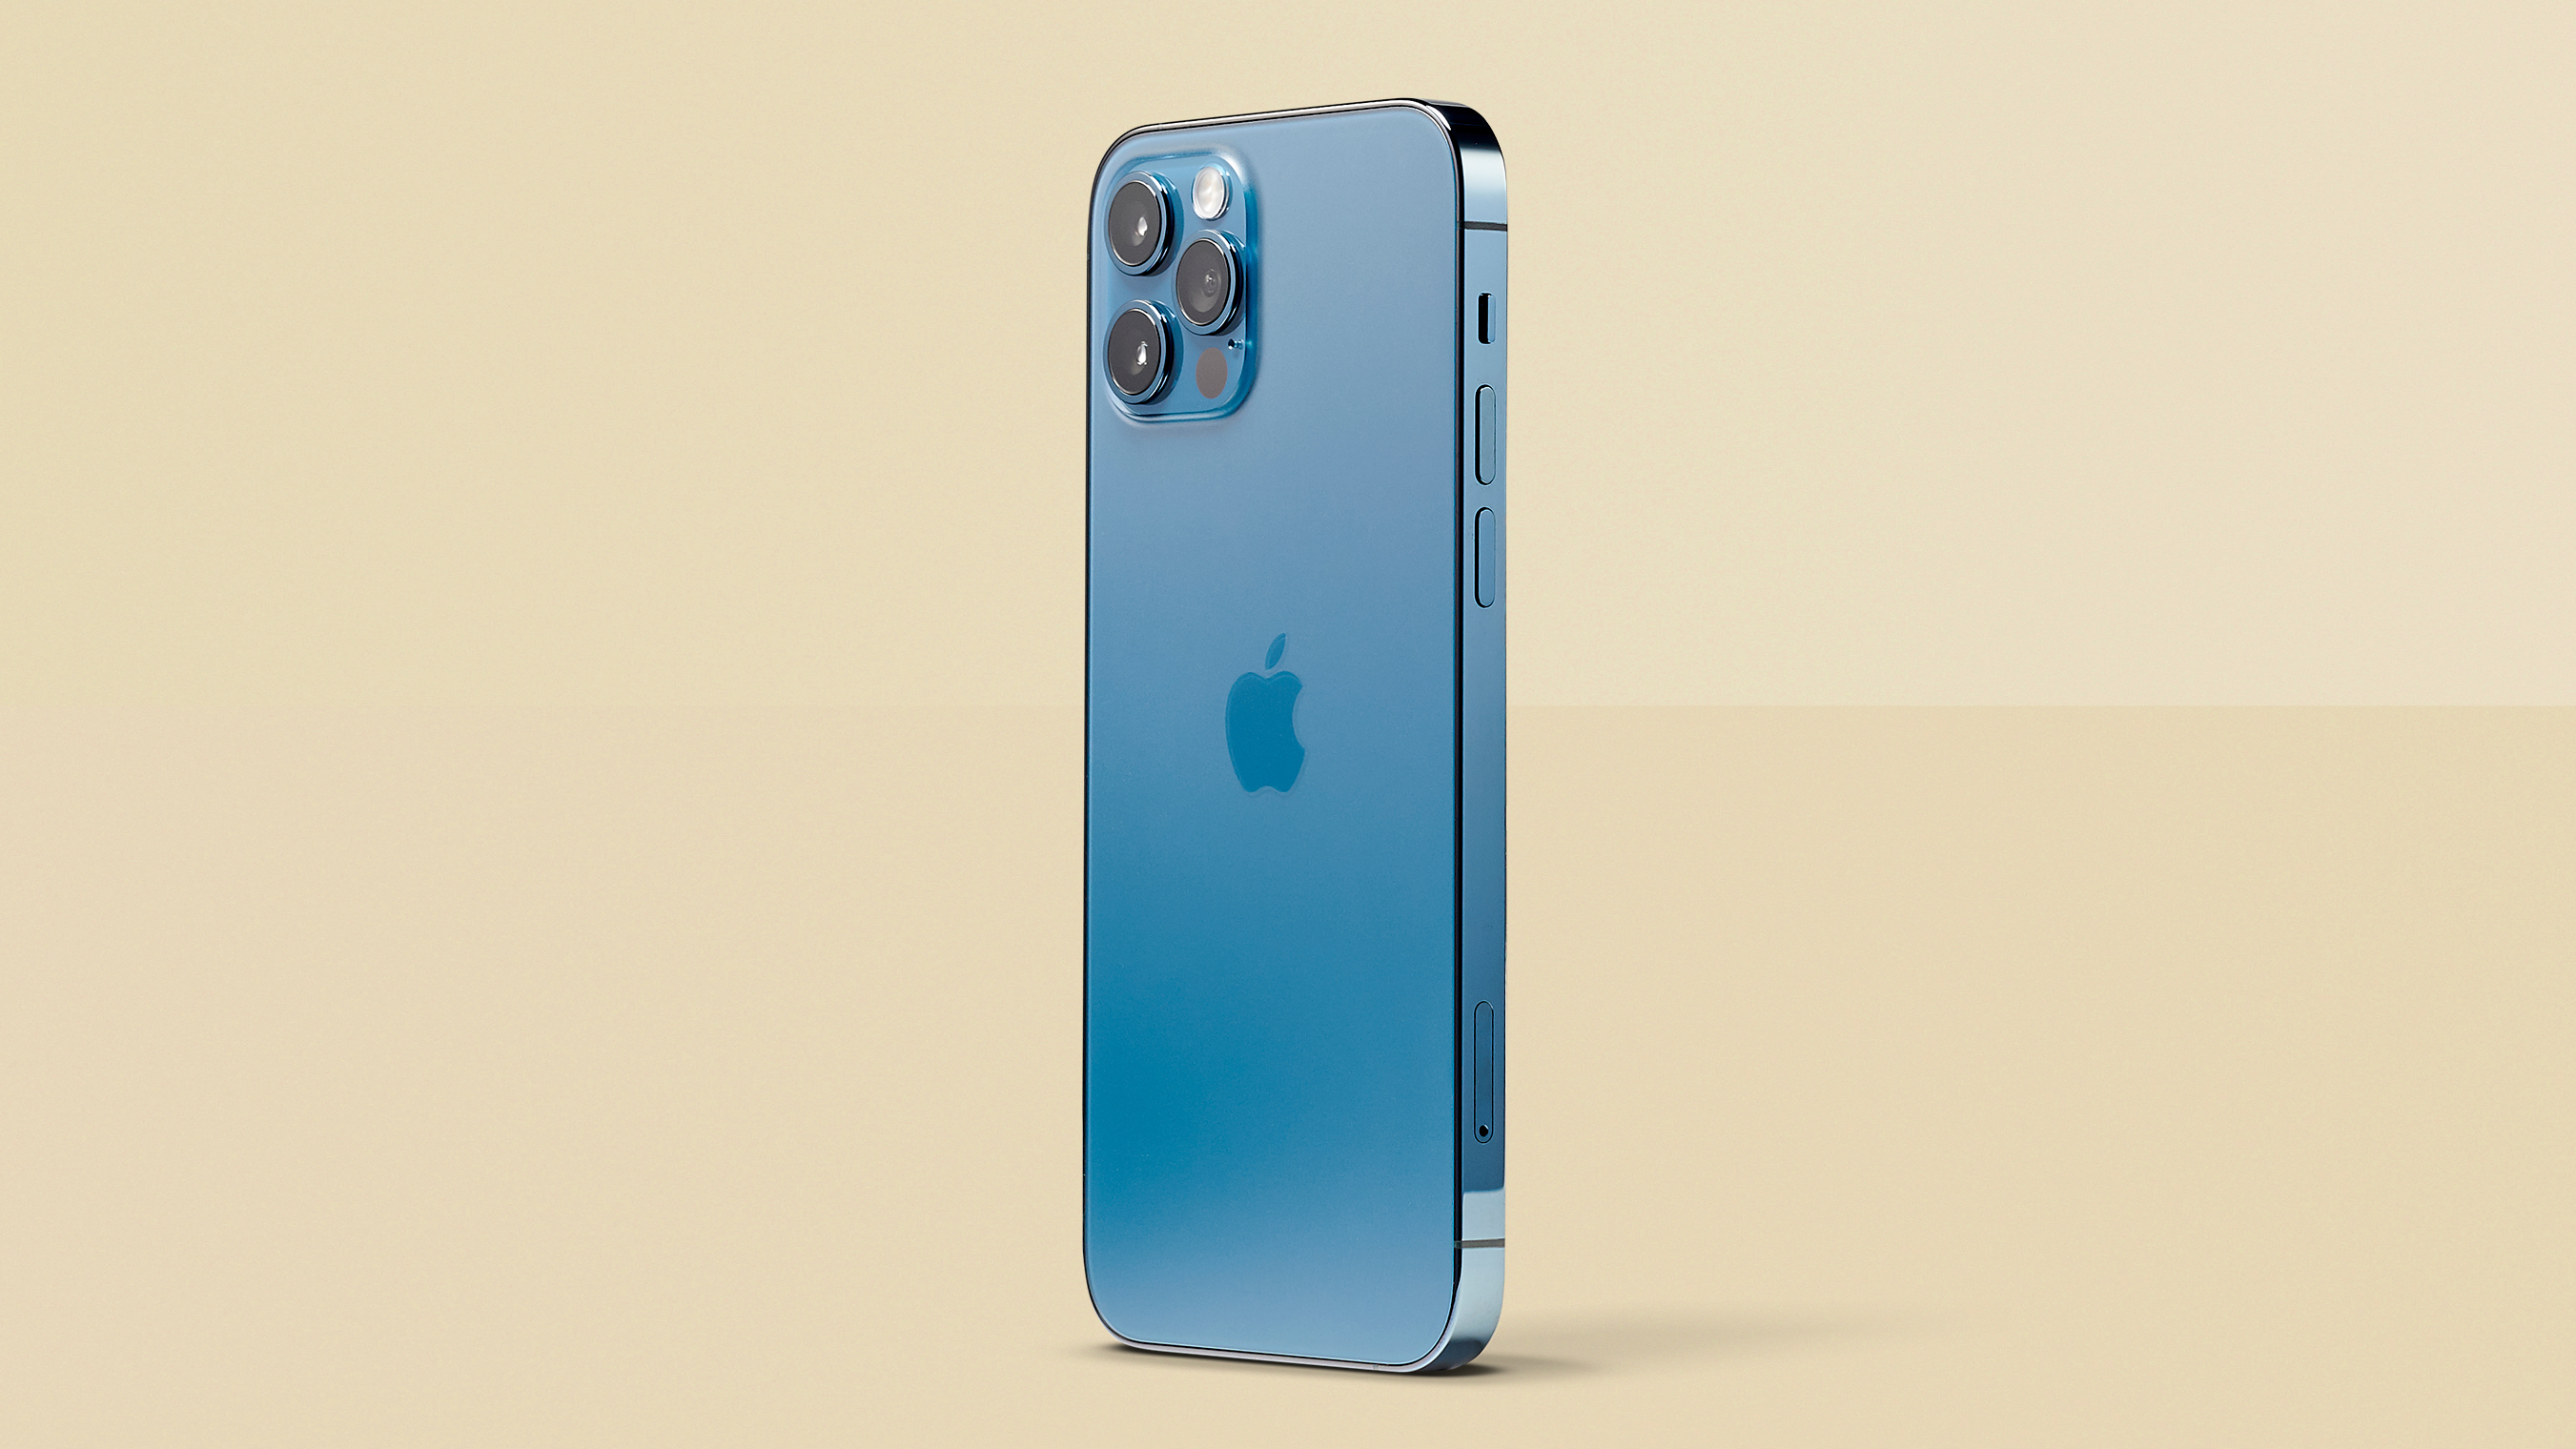 https://www.t3.com/reviews/iphone-12-pro-max-review